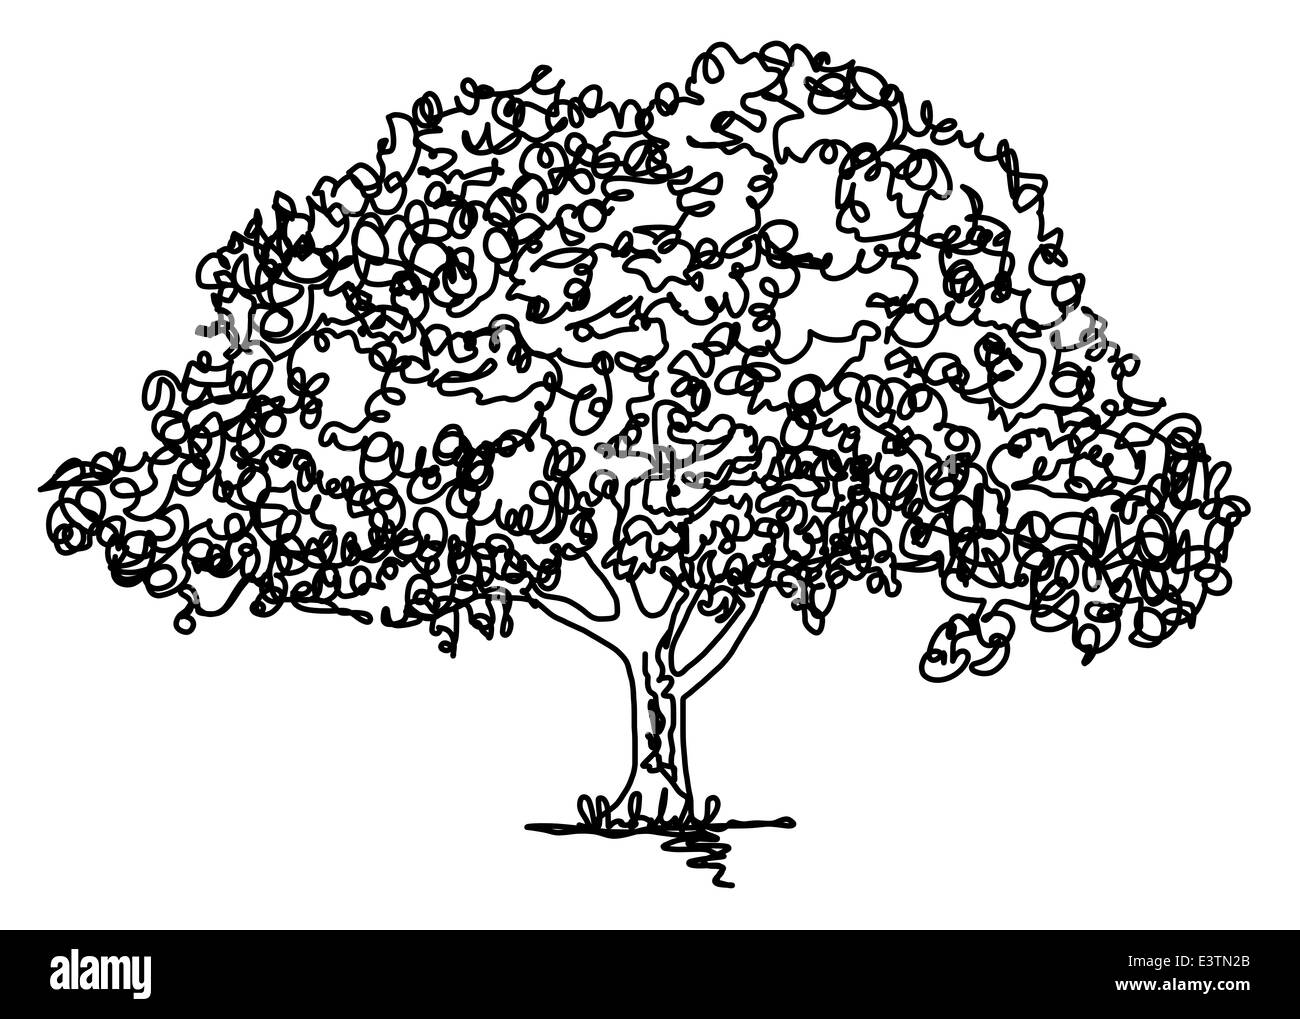 Continuous line drawing of an oak tree - Stock Image